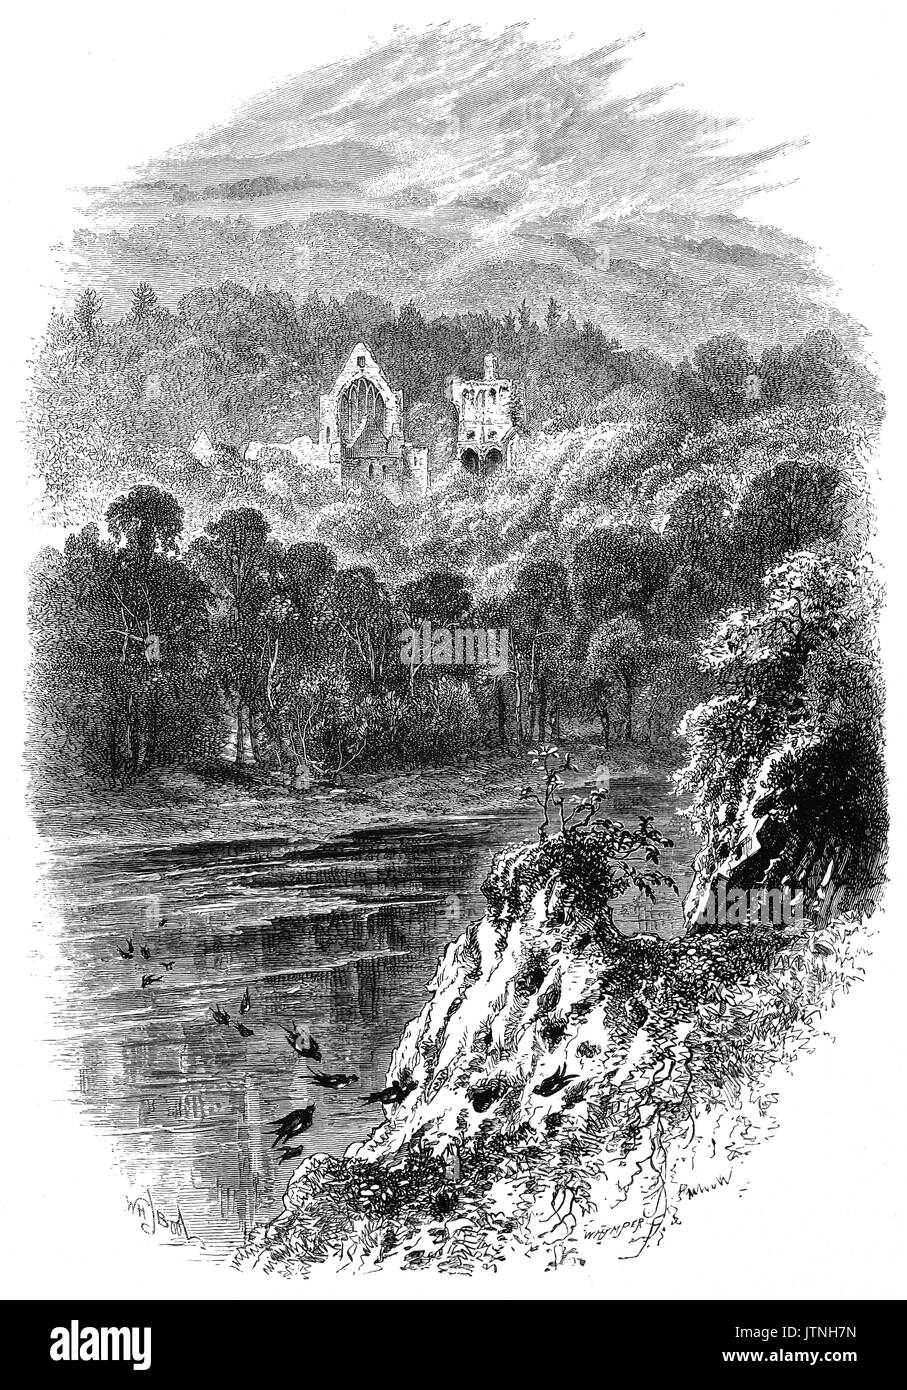 1870: Dryburgh Abbey, from the banks of the River Tweed. It was founded in the 12th Century, then burned by English troops in 1322, after which it was restored only to be again burned by Richard II in 1385. It flourished in the fifteenth century, finally destroyed in 1544, briefly to survive until the Scottish Reformation.  Sir Walter Scott and Douglas Haig are buried in its grounds. Roxburghshire, Scotland, United Kingdom. - Stock Image